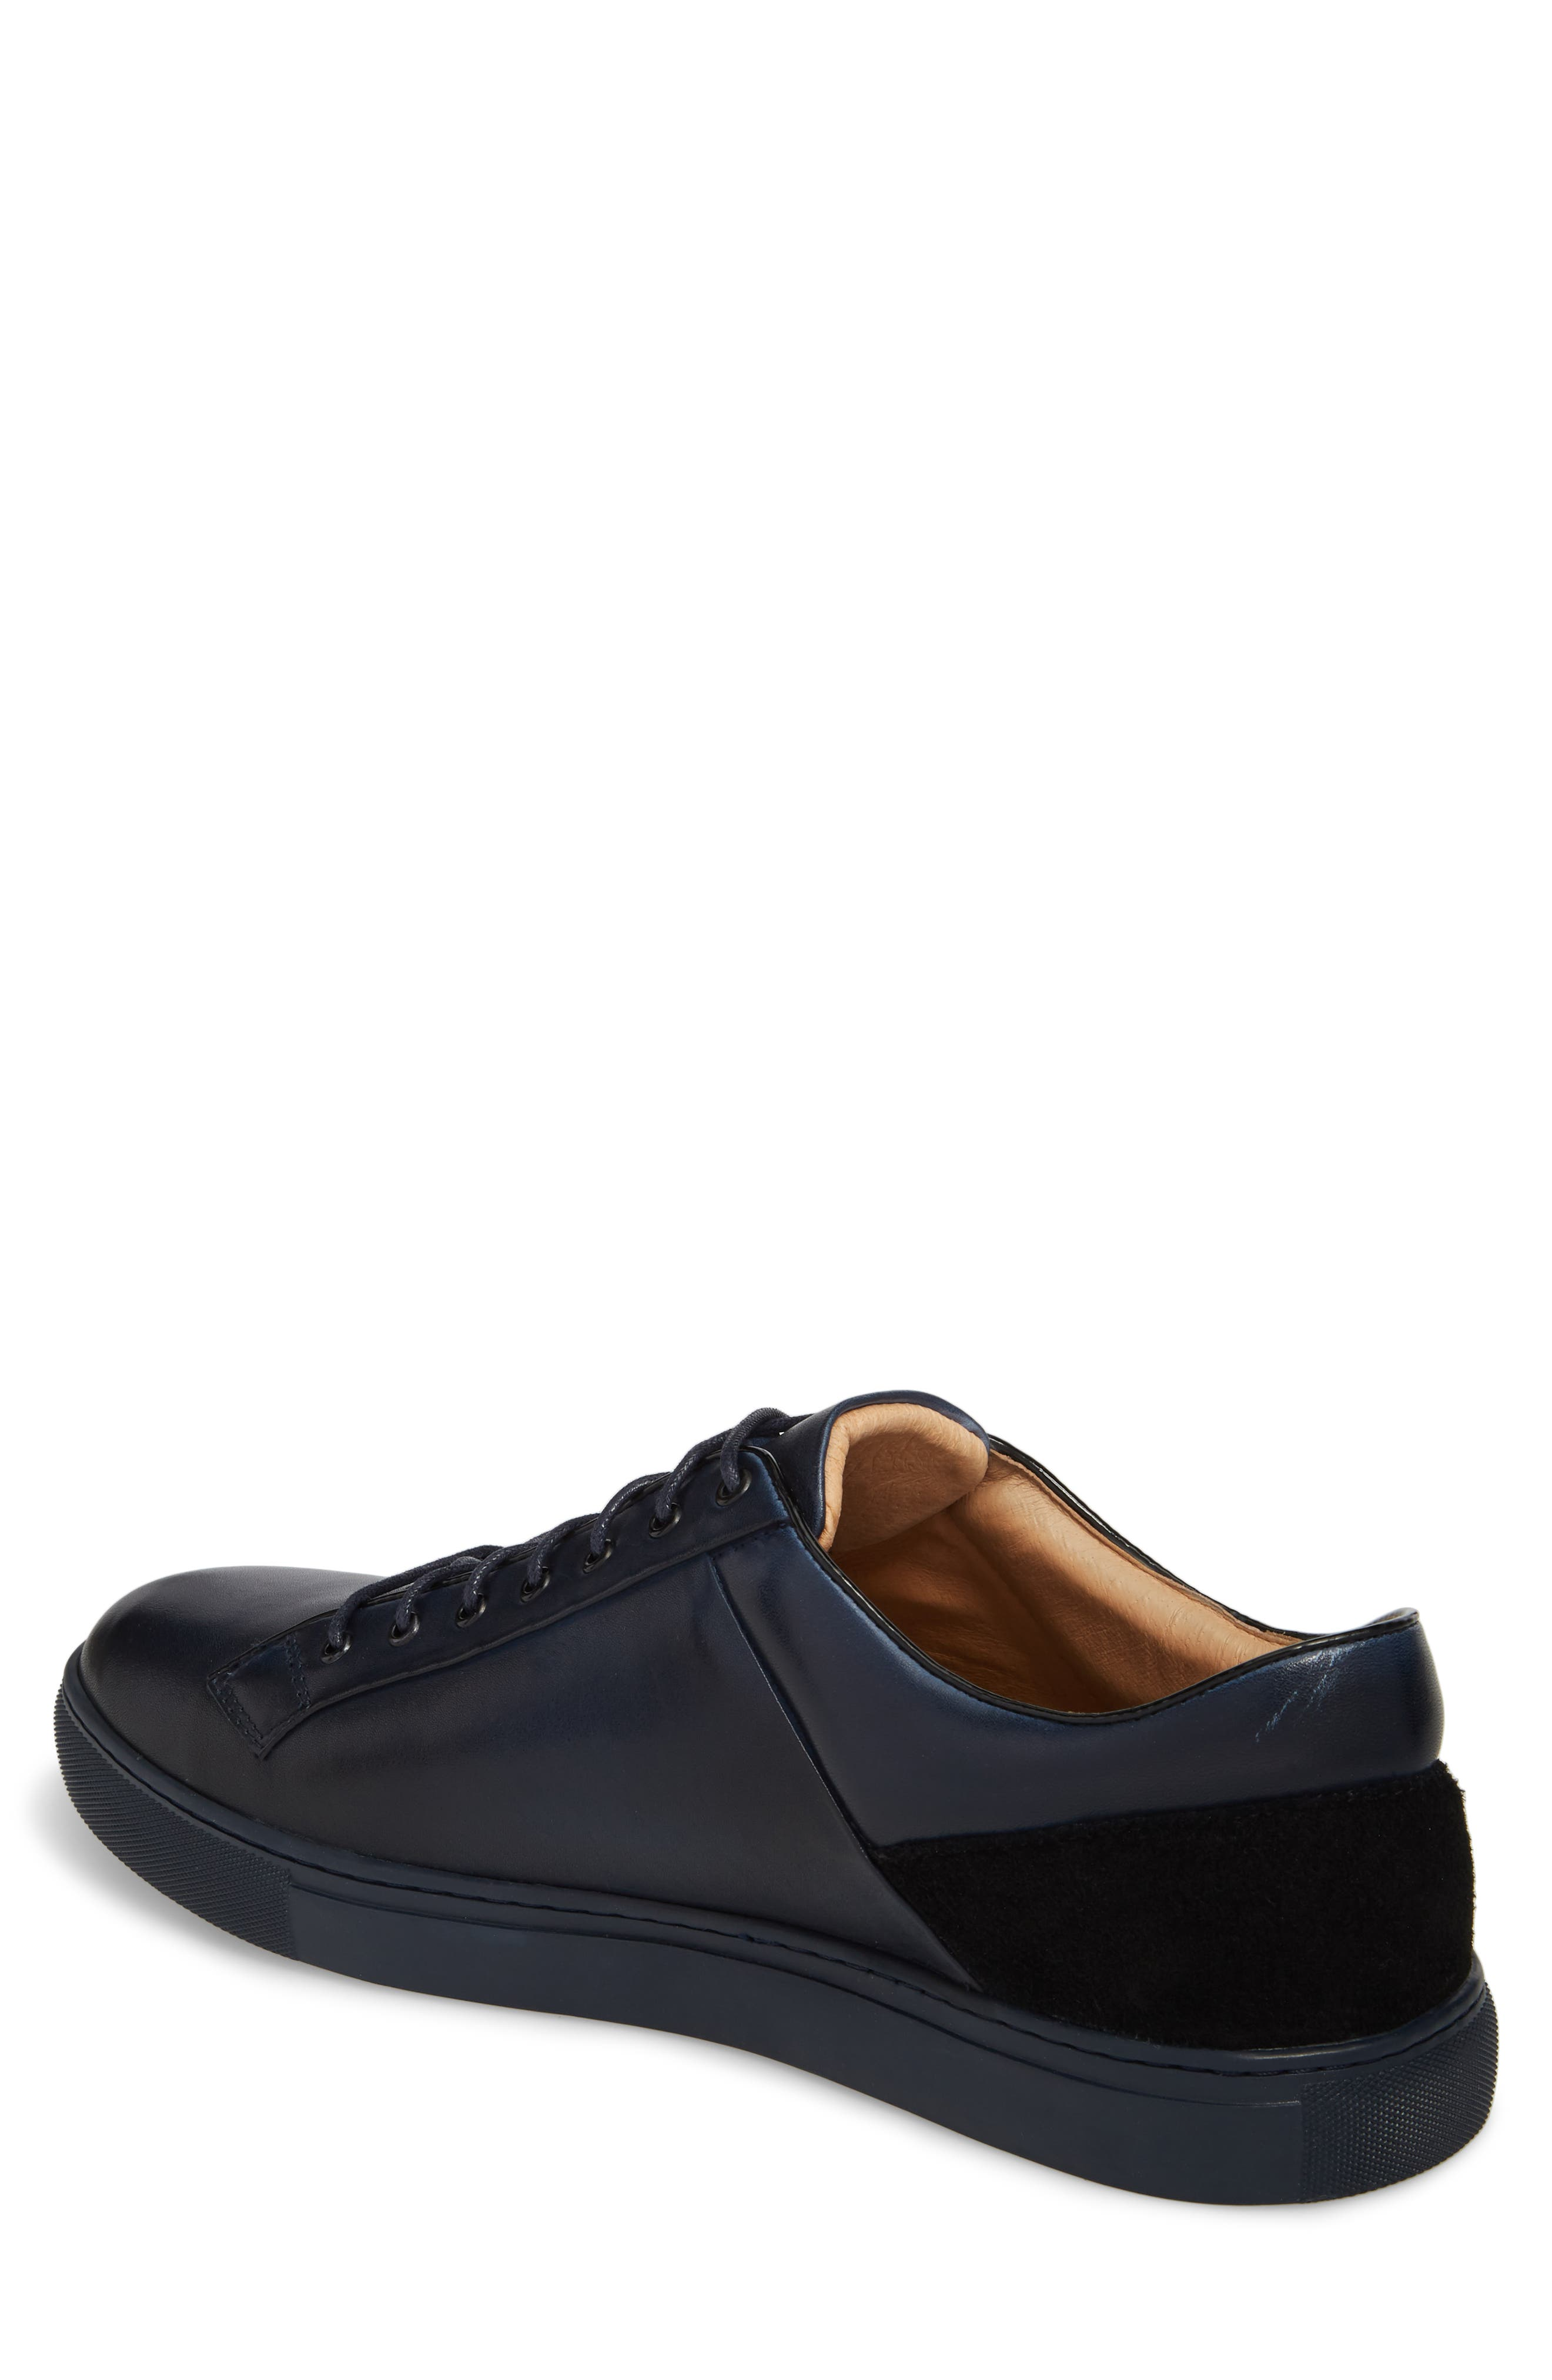 Pitch Low Top Sneaker,                             Alternate thumbnail 2, color,                             Navy Leather/ Suede